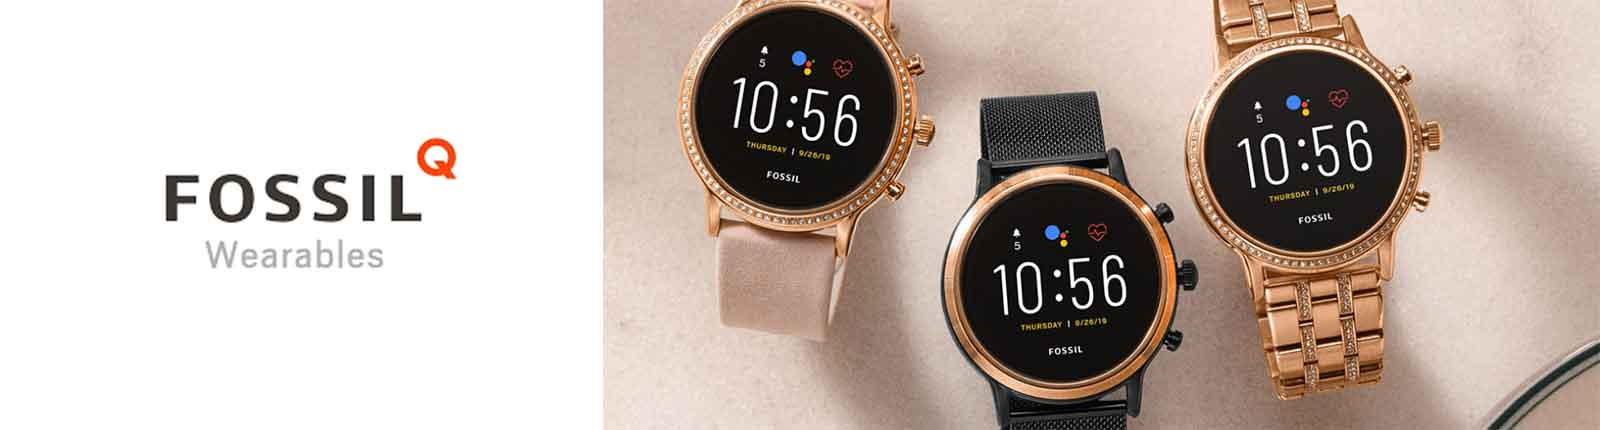 Fossil-Smartwatch-HR5-Damen